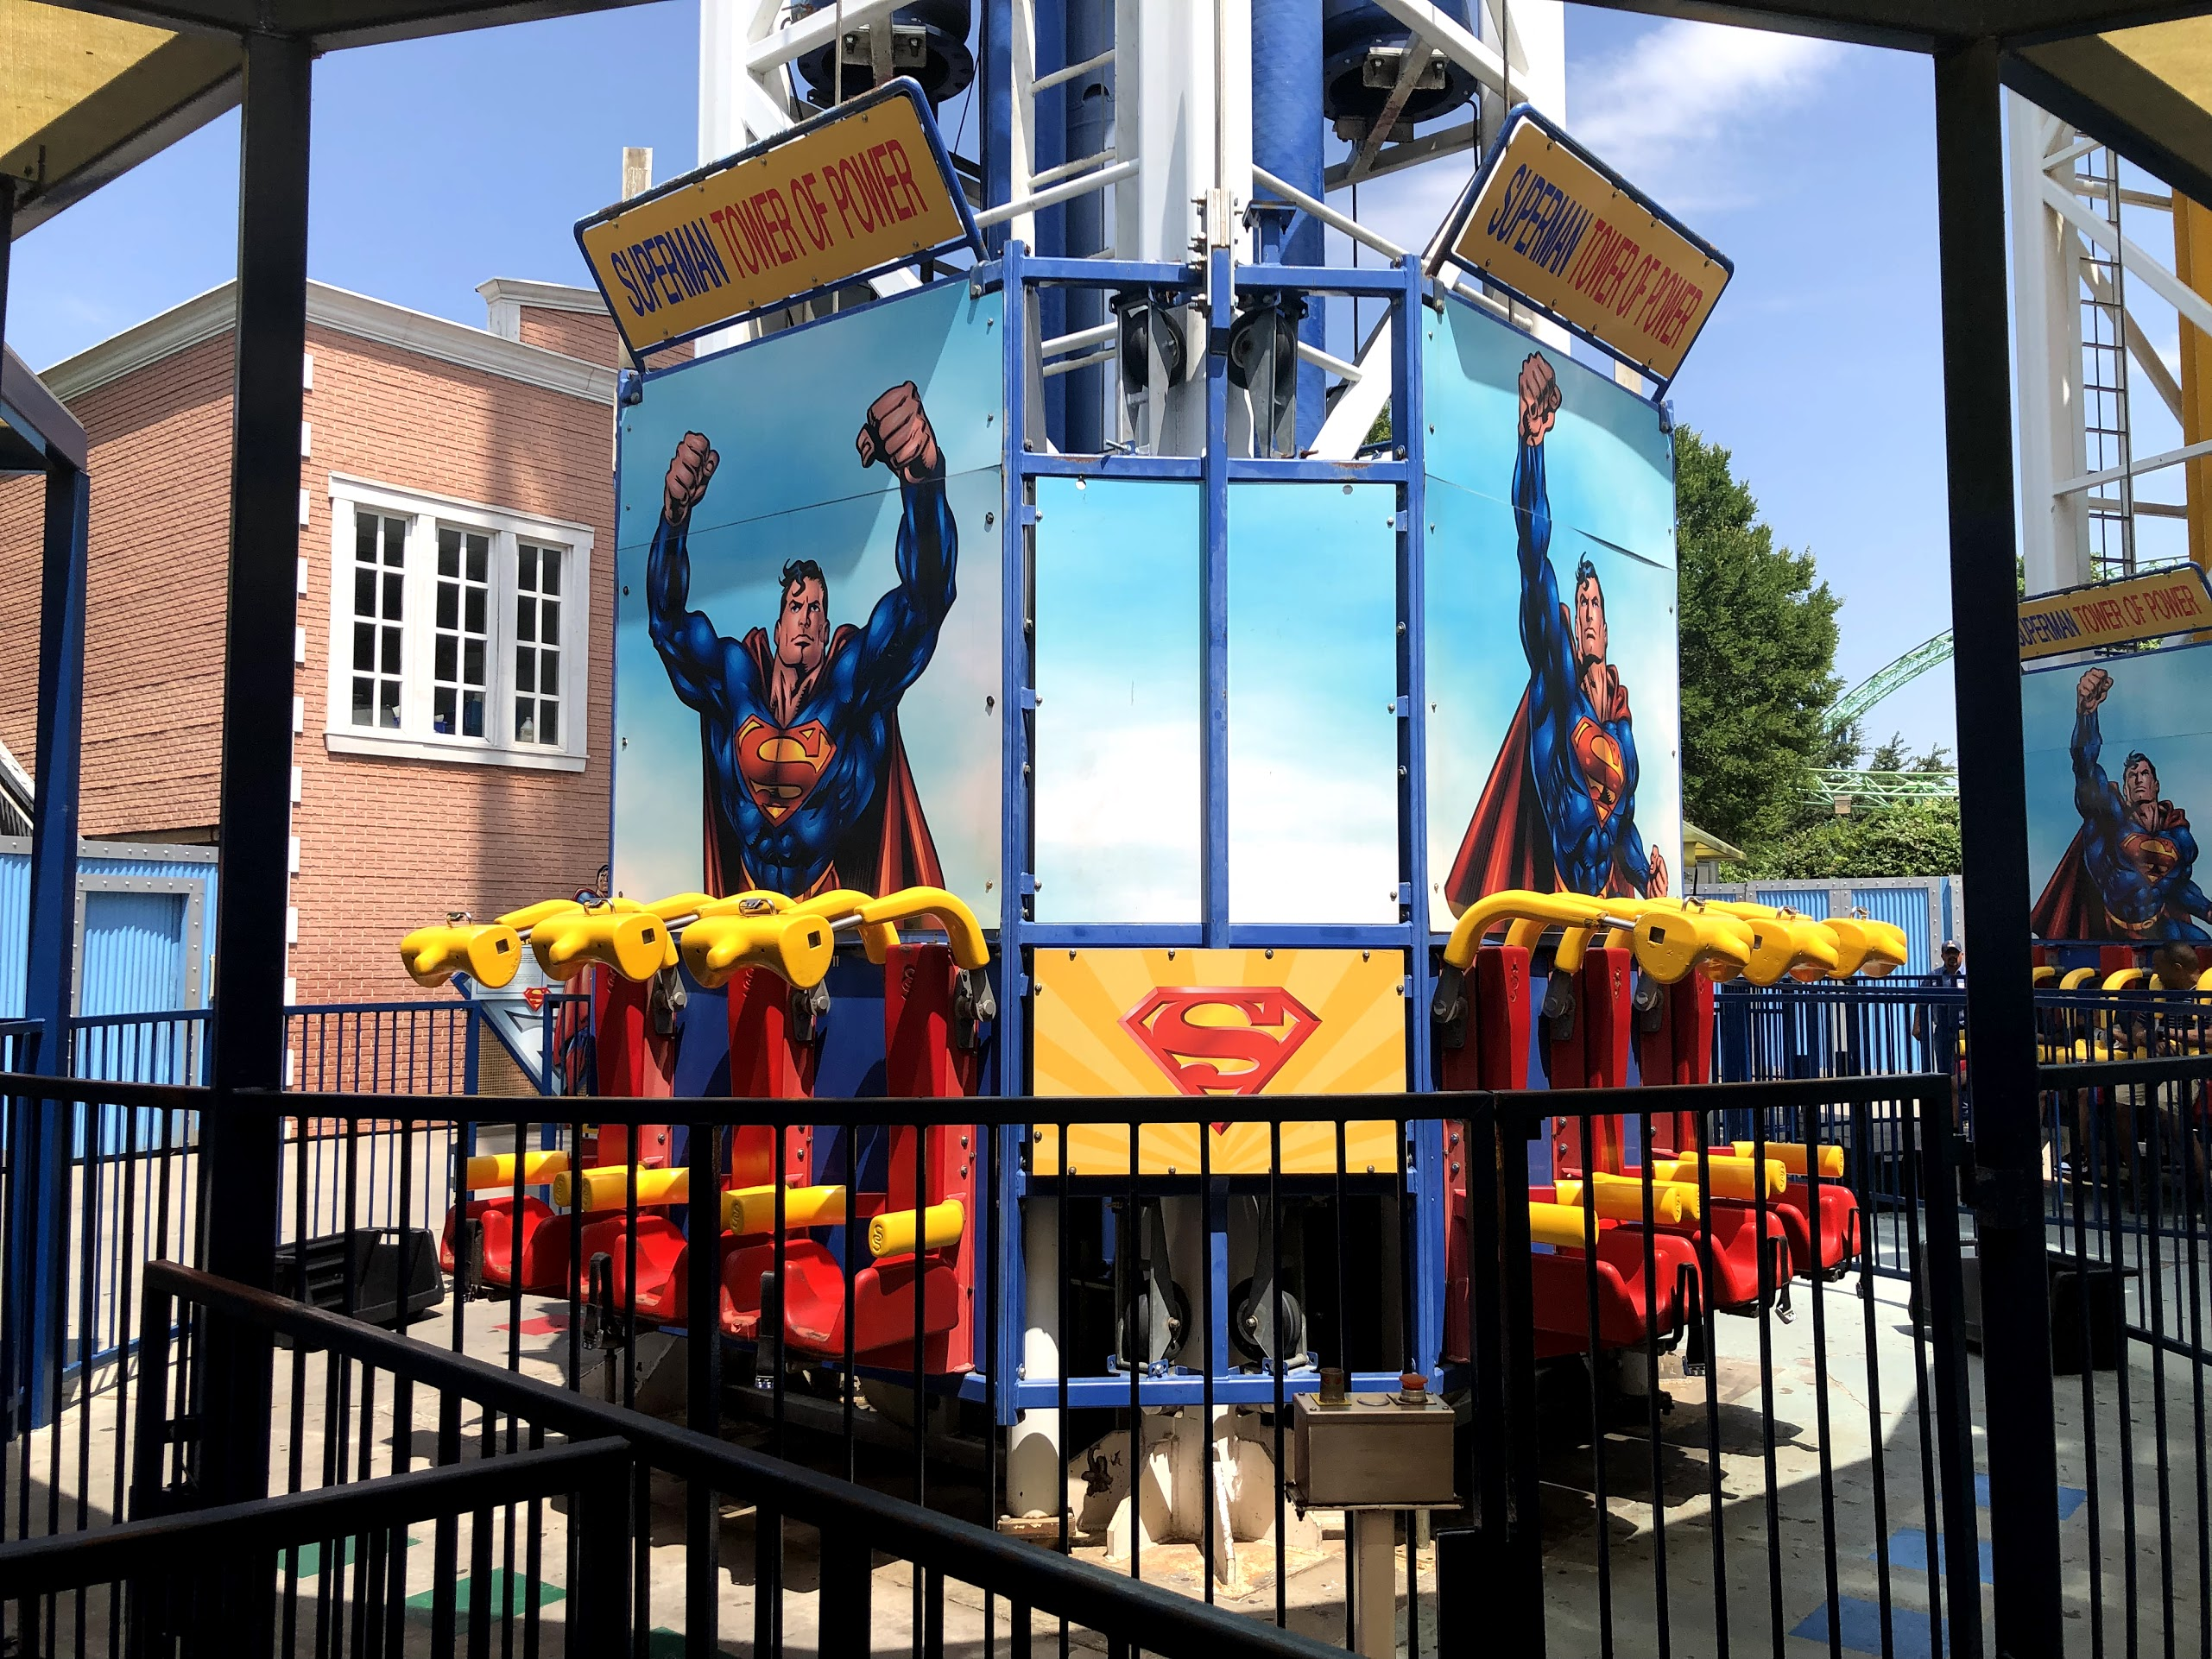 The Superman ride at Six Flags Over Texas in Arlington